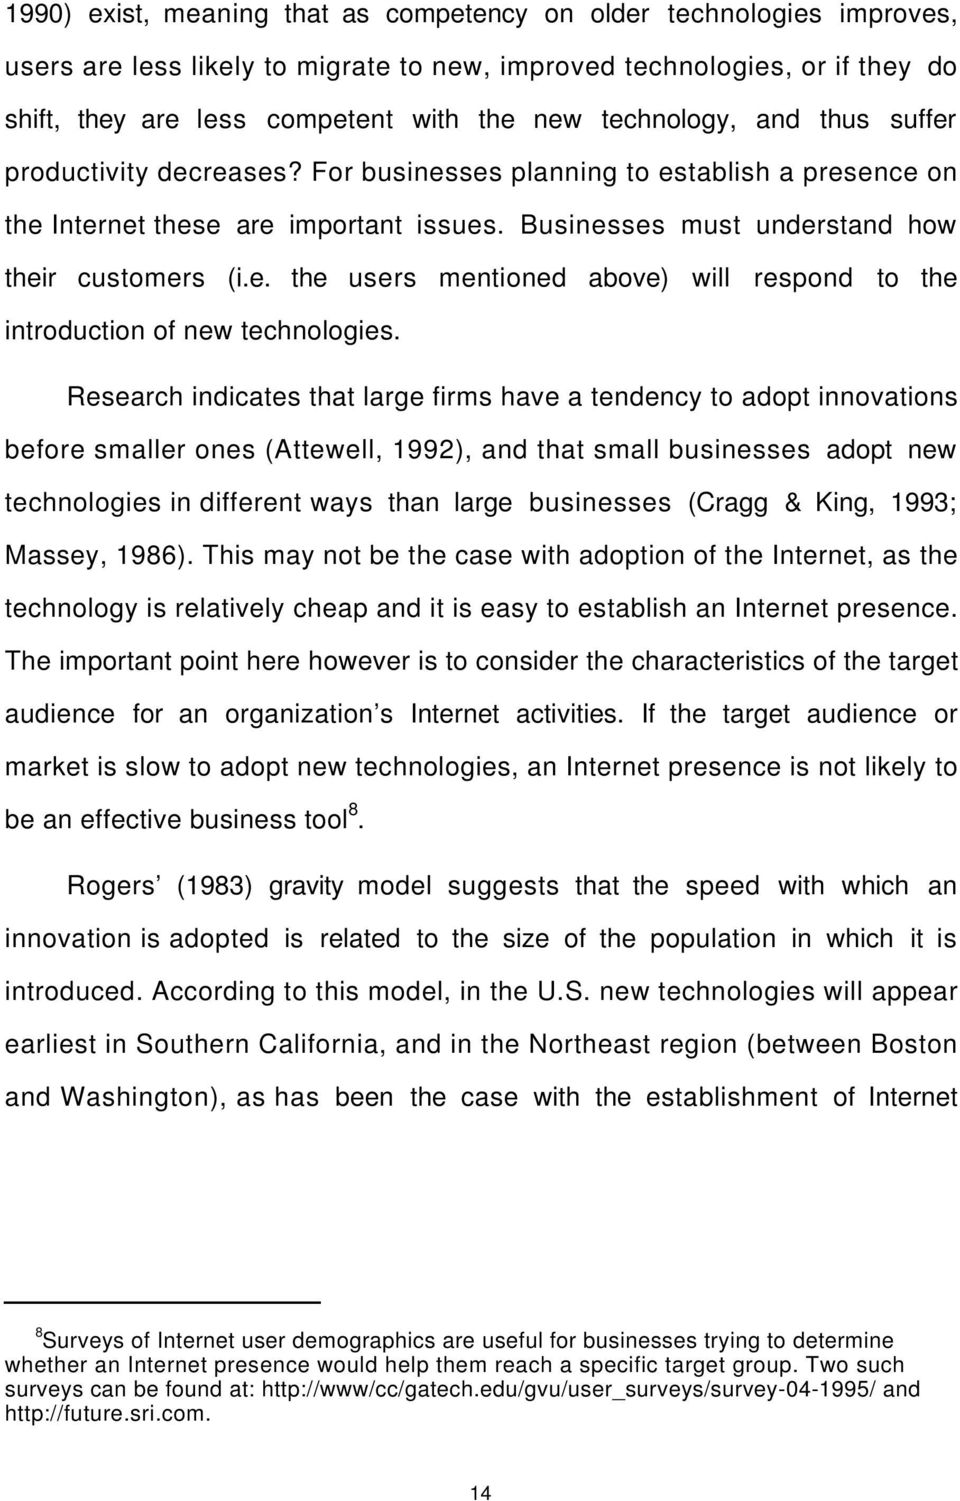 Research indicates that large firms have a tendency to adopt innovations before smaller ones (Attewell, 1992), and that small businesses adopt new technologies in different ways than large businesses